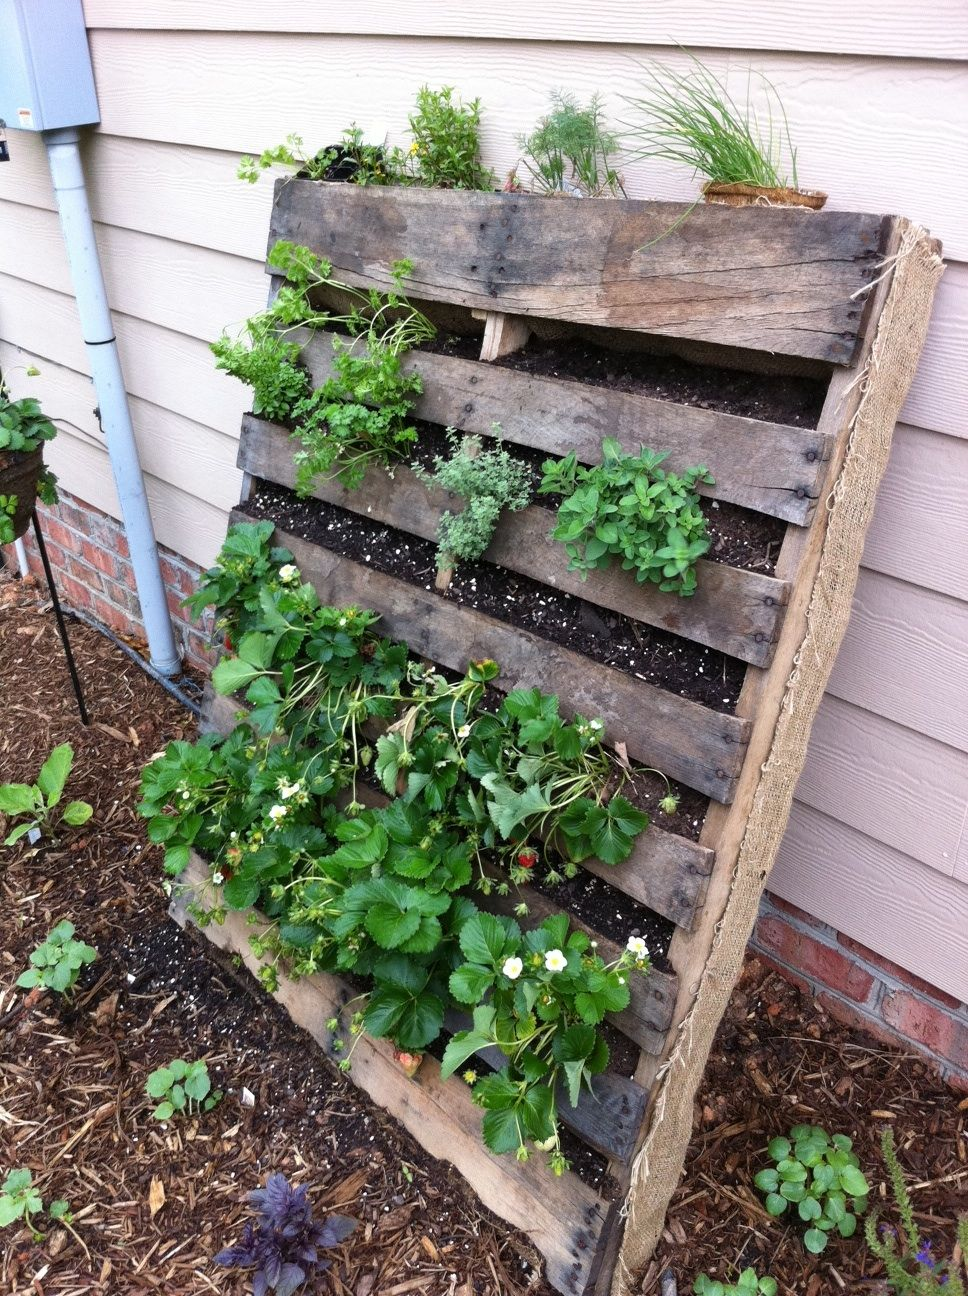 Diy herb garden made of pallets refresh your eyes and mind with pallet - Pallet Gardening Works Best If You Plant Them Close Together And Prop It On